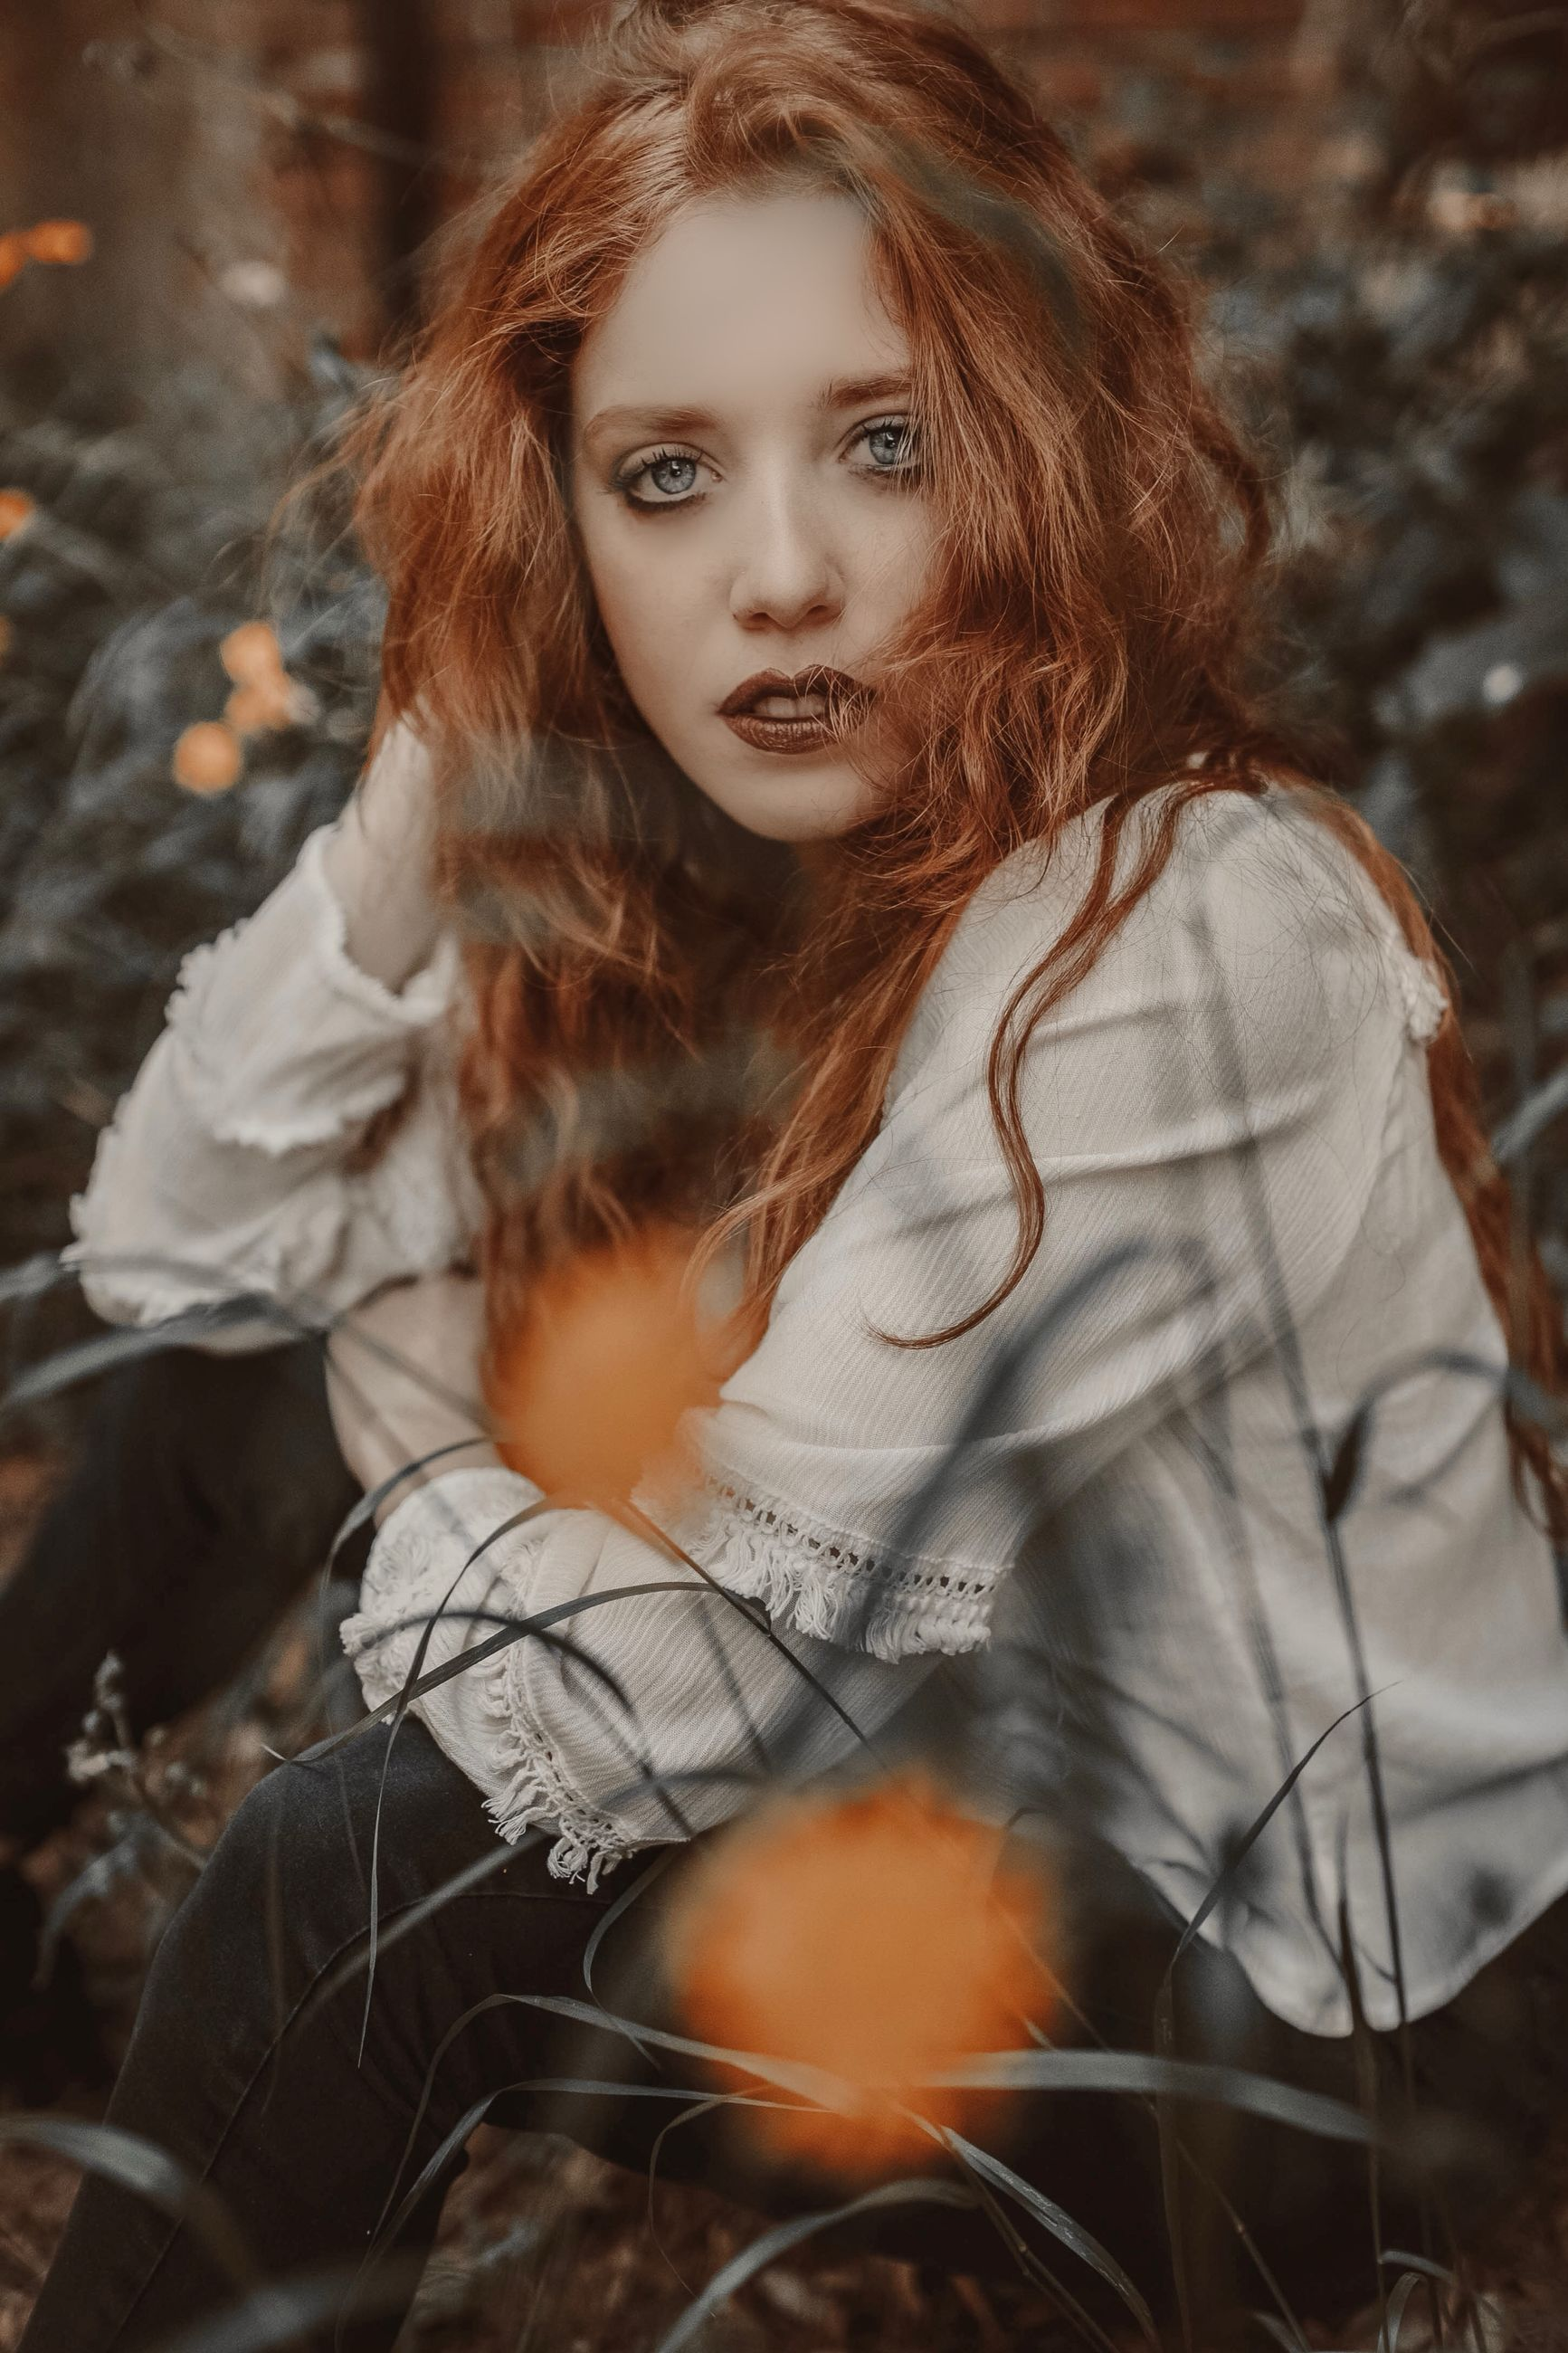 one person, long hair, young adult, hairstyle, young women, hair, leisure activity, women, beauty, portrait, beautiful woman, real people, lifestyles, casual clothing, looking at camera, looking, land, forest, outdoors, contemplation, teenager